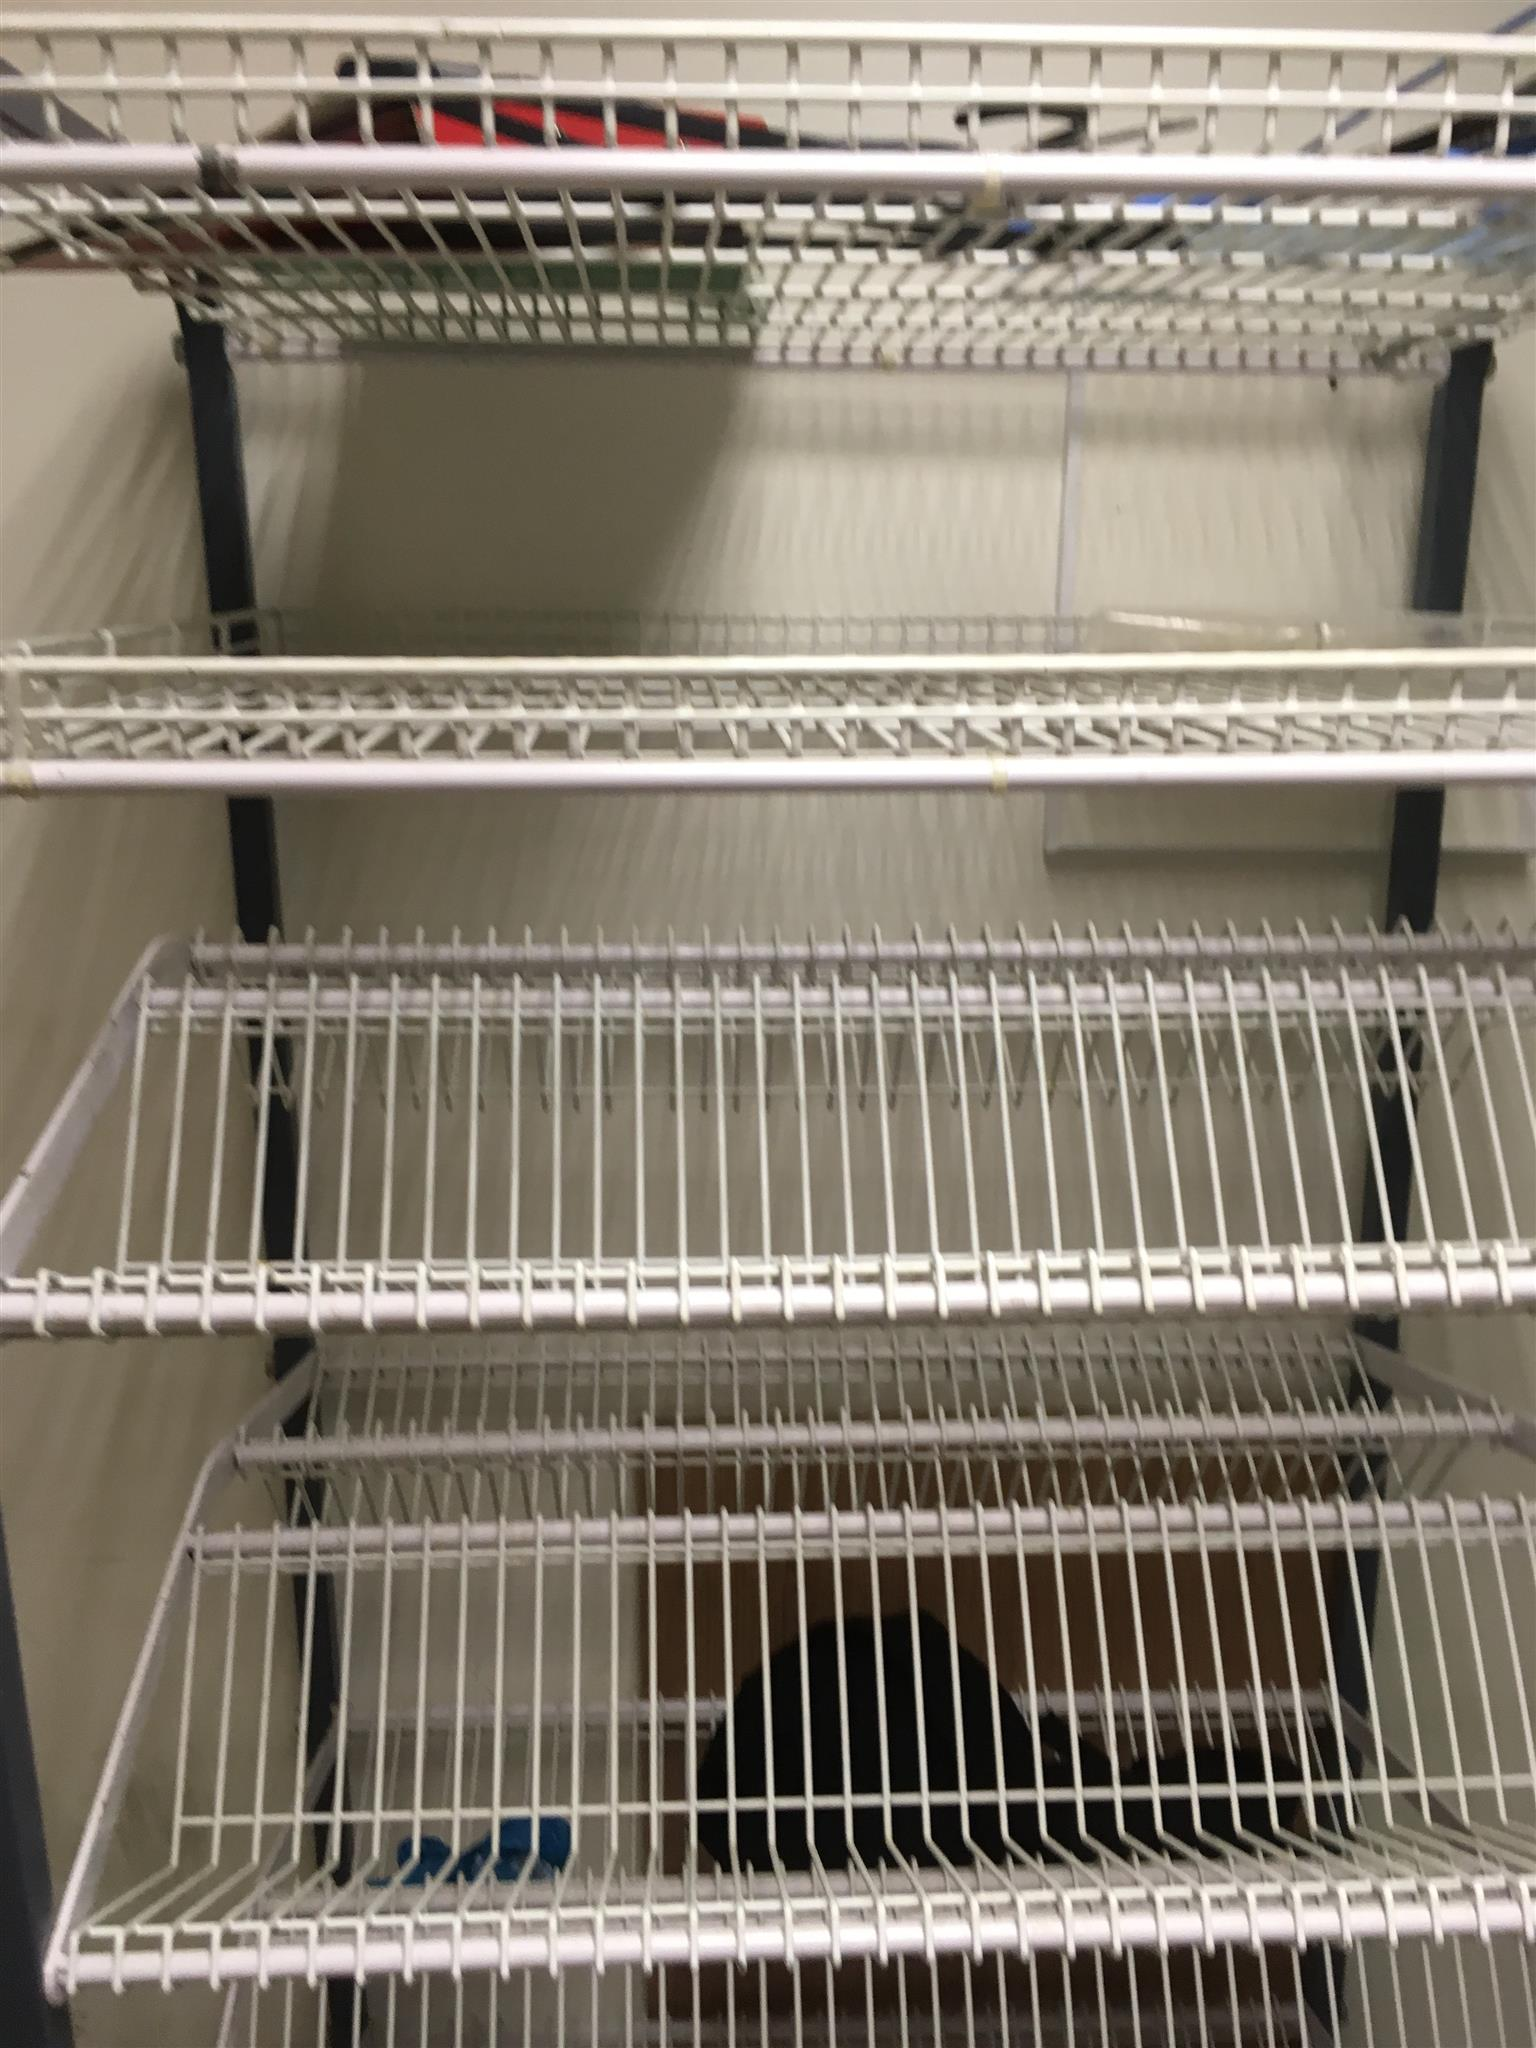 Commercial dish dry rack